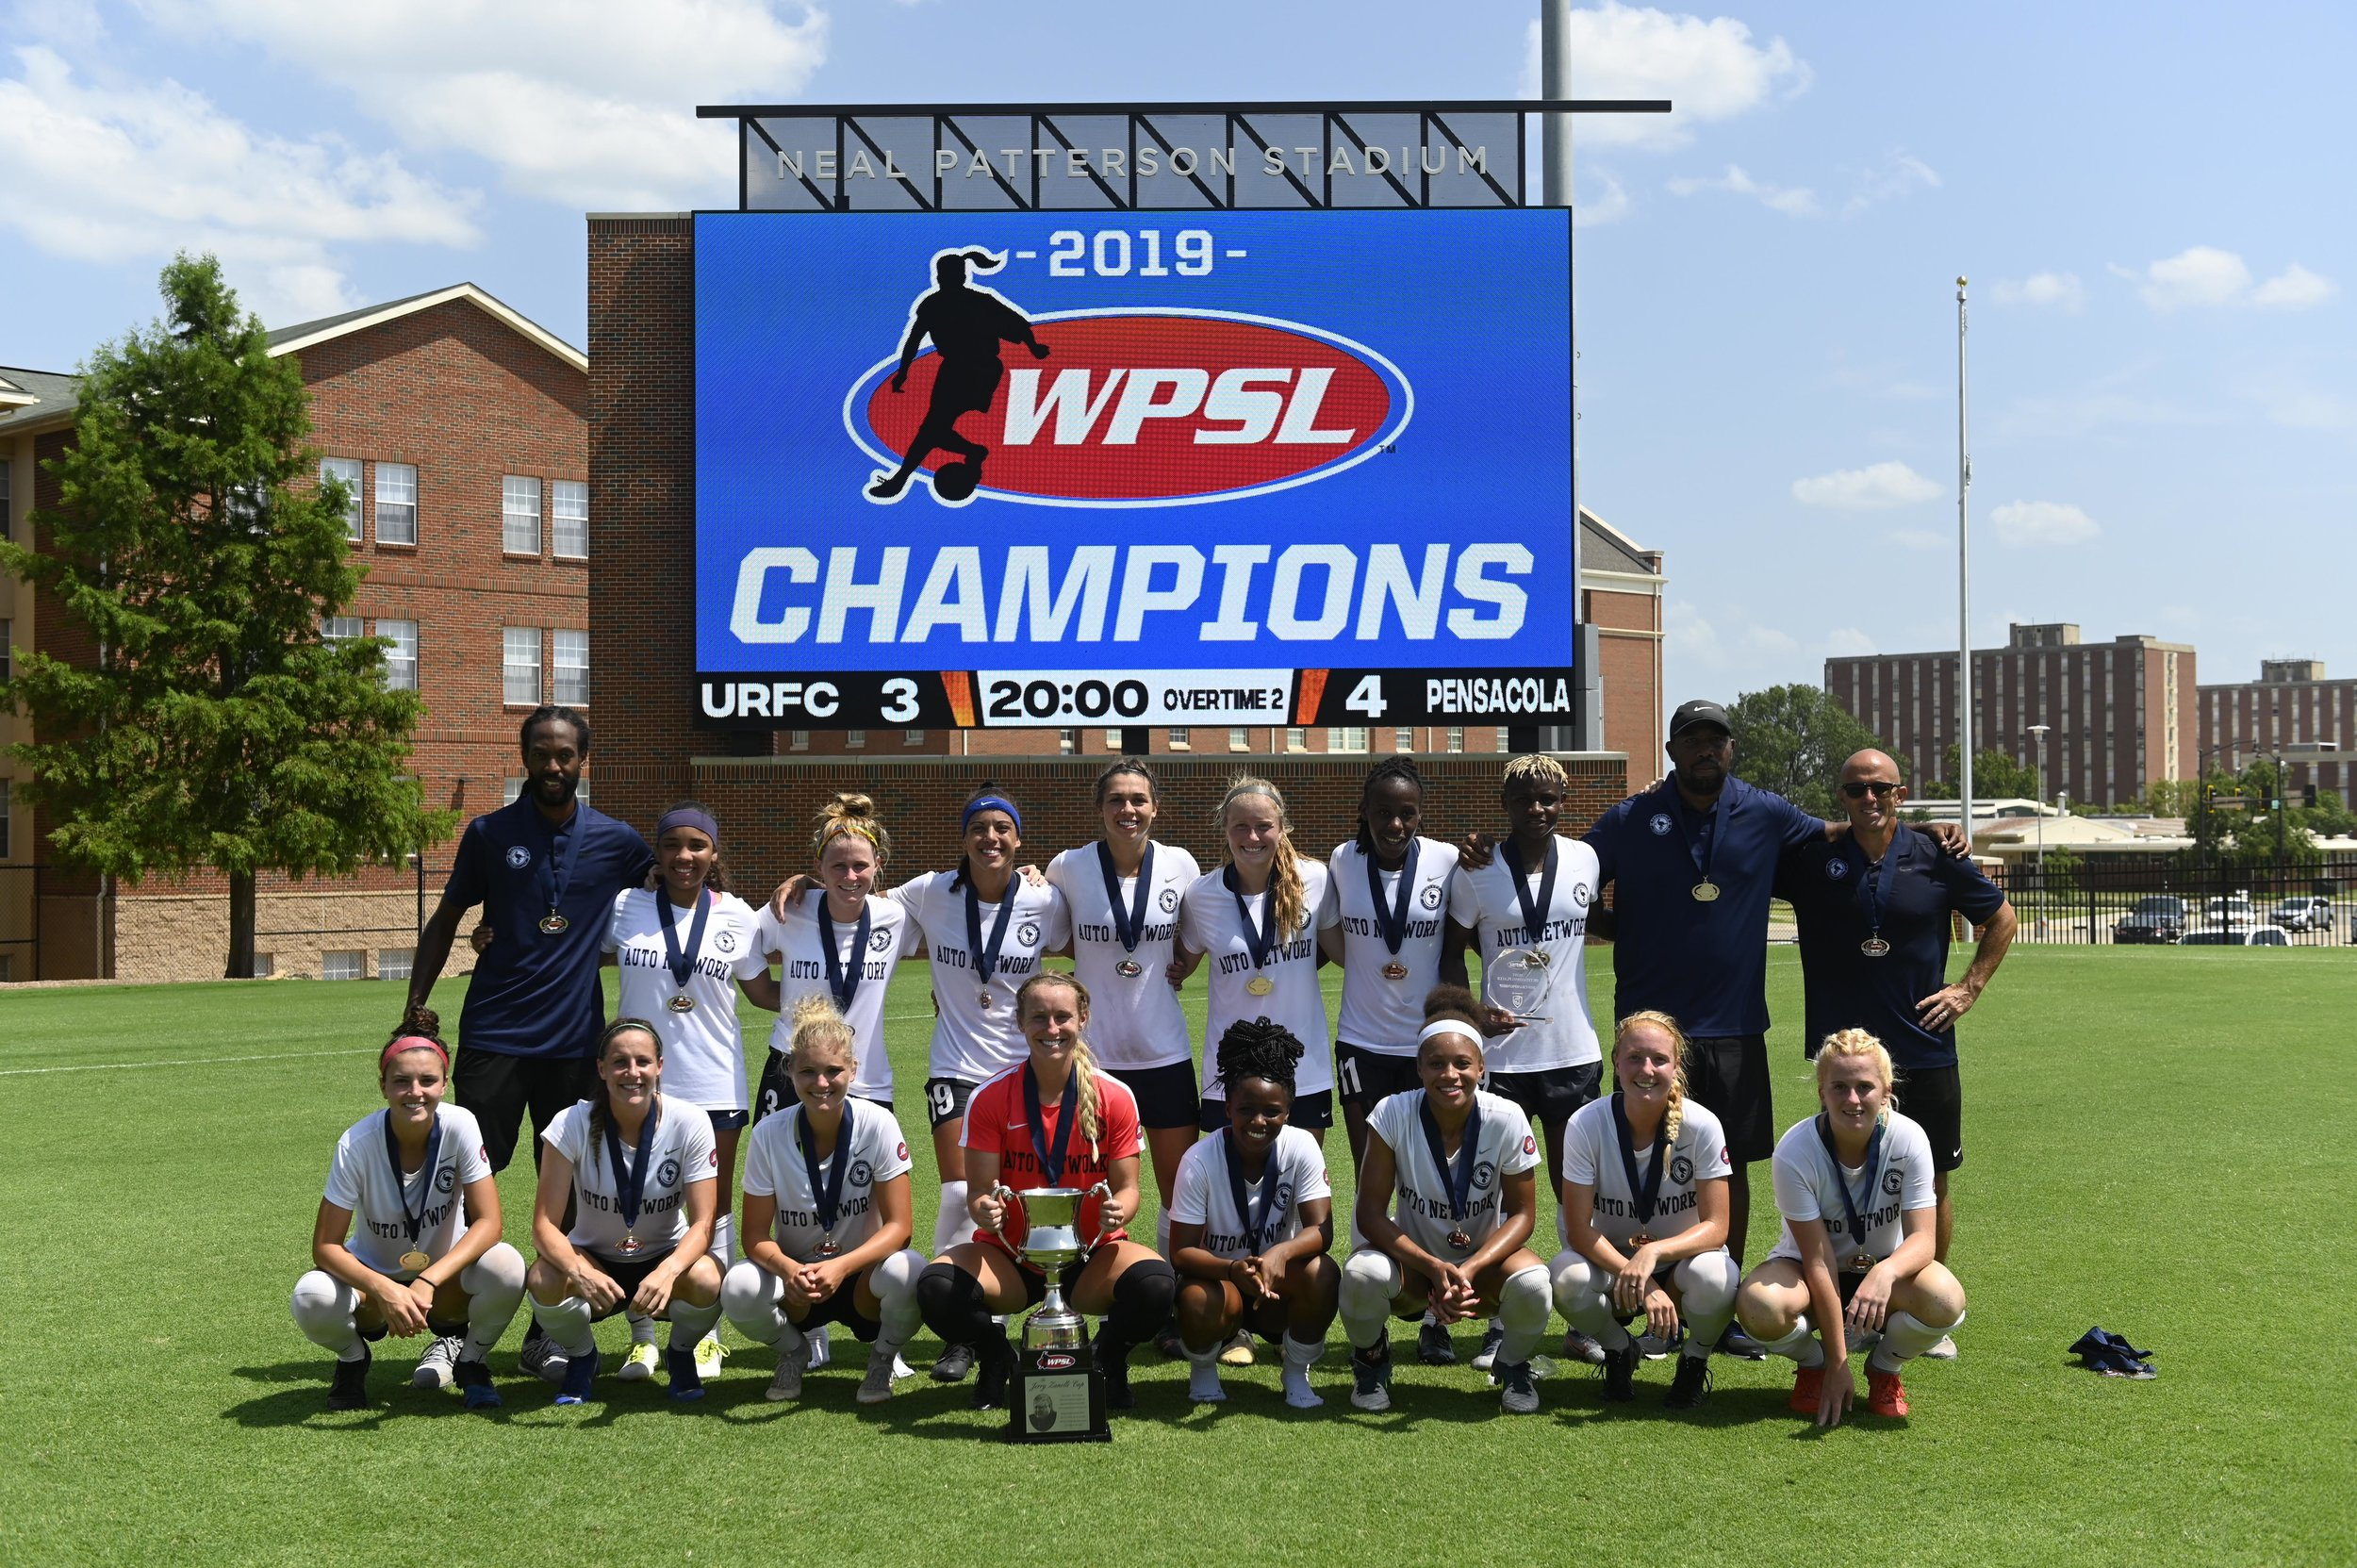 Pensecola won the 2019 WPSL Title in 2019. (Image courtesy of WPSL and KT King)